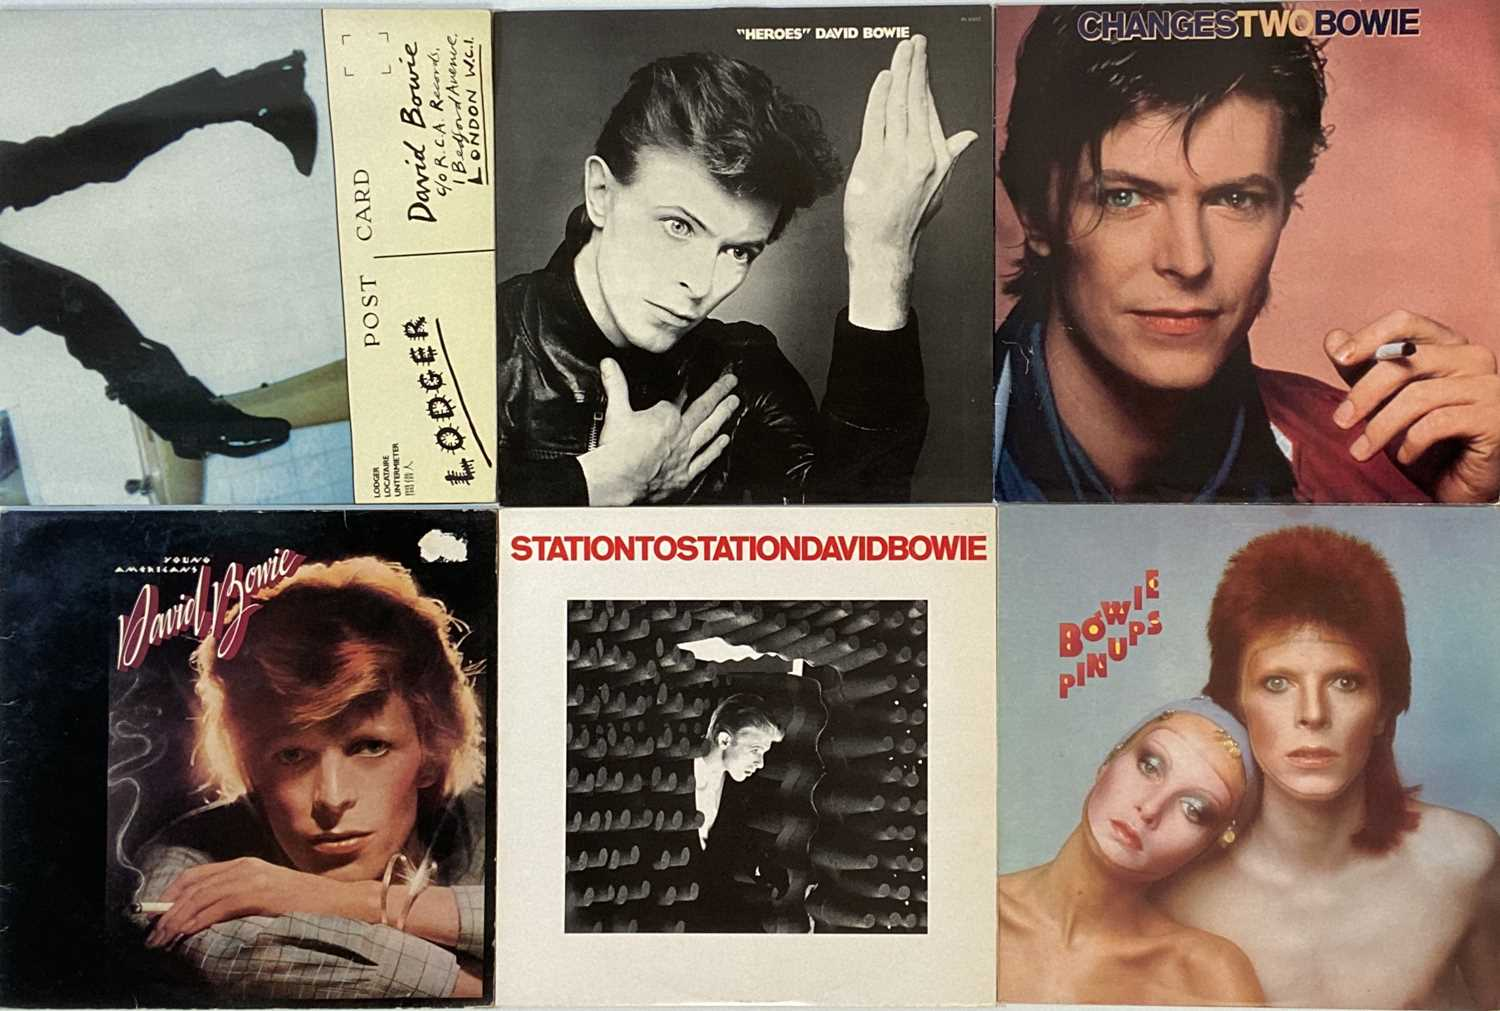 DAVID BOWIE - UK PRESSING LP COLLECTION - Image 2 of 7